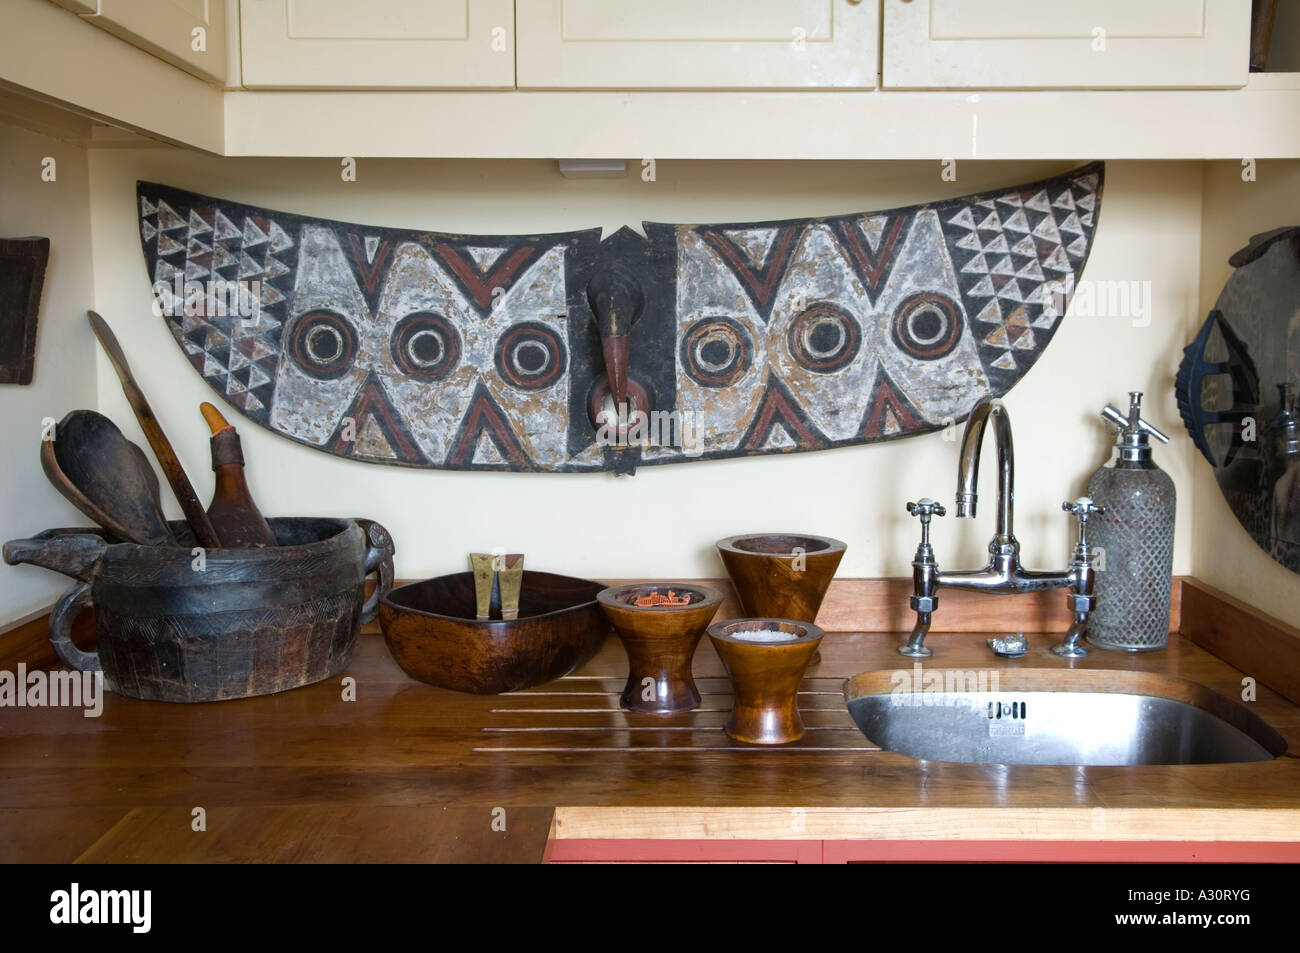 Kitchen sink area with African art - Stock Image